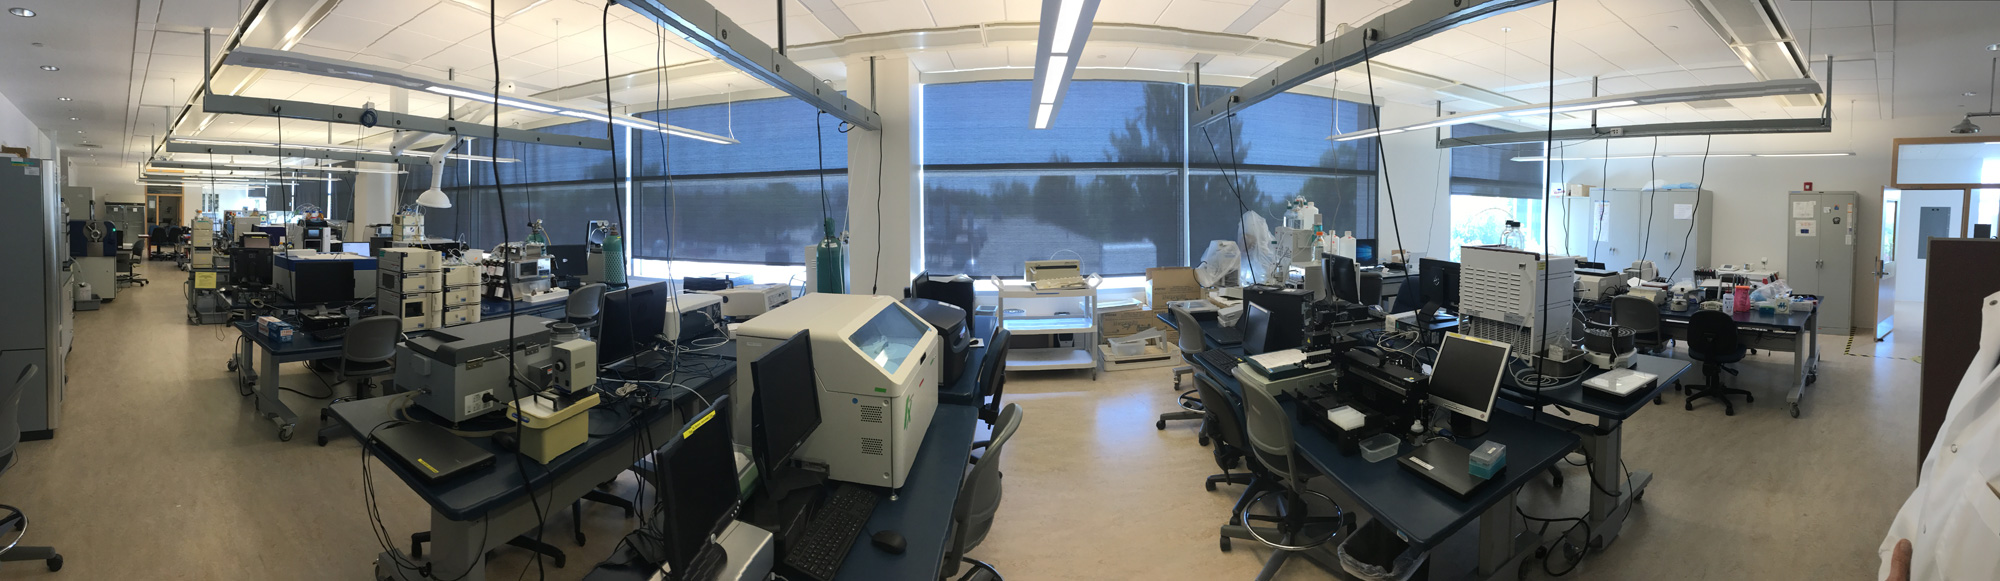 RI-INBRE Centralized Research Core Facility, URI College of Pharmacy